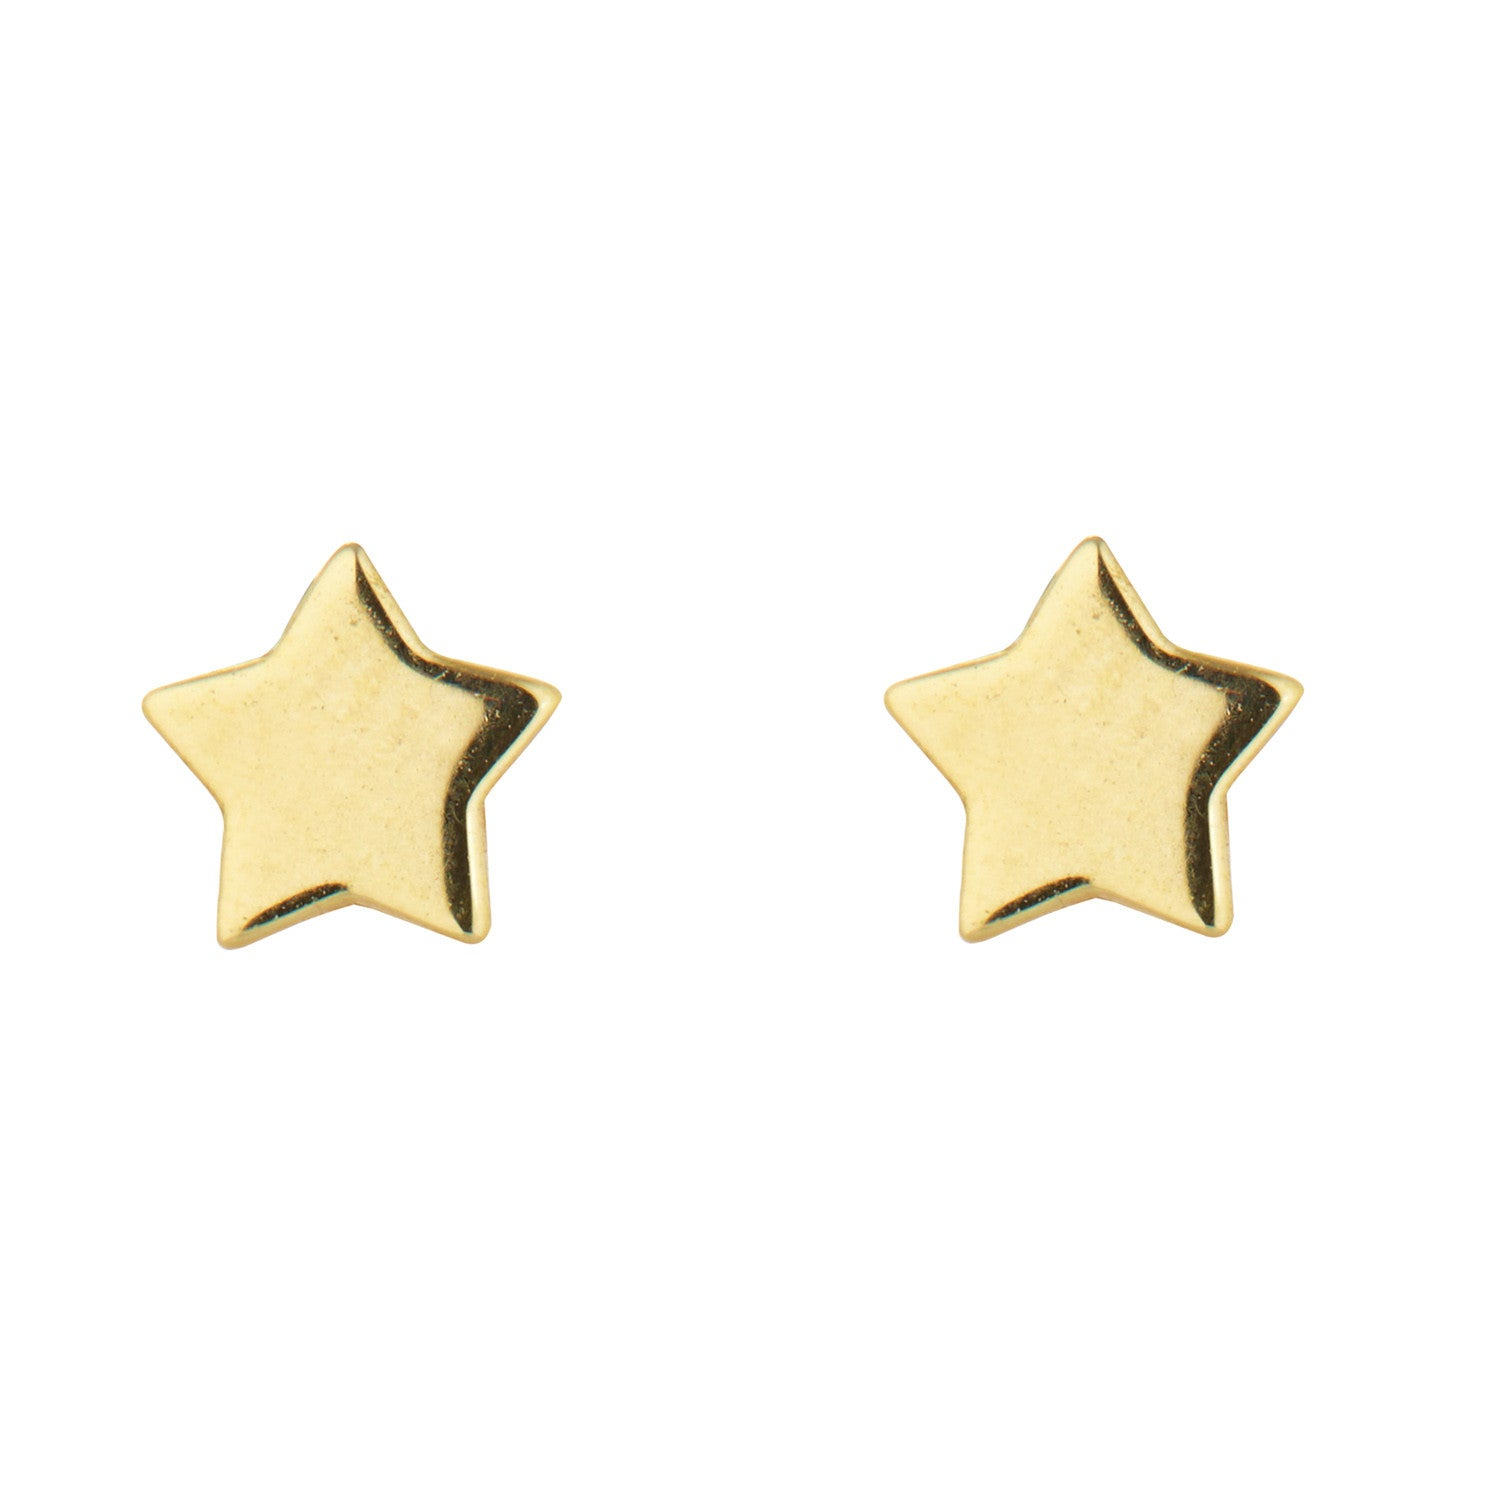 9kt Gold Star Stud Earrings - MoMuse Jewellery